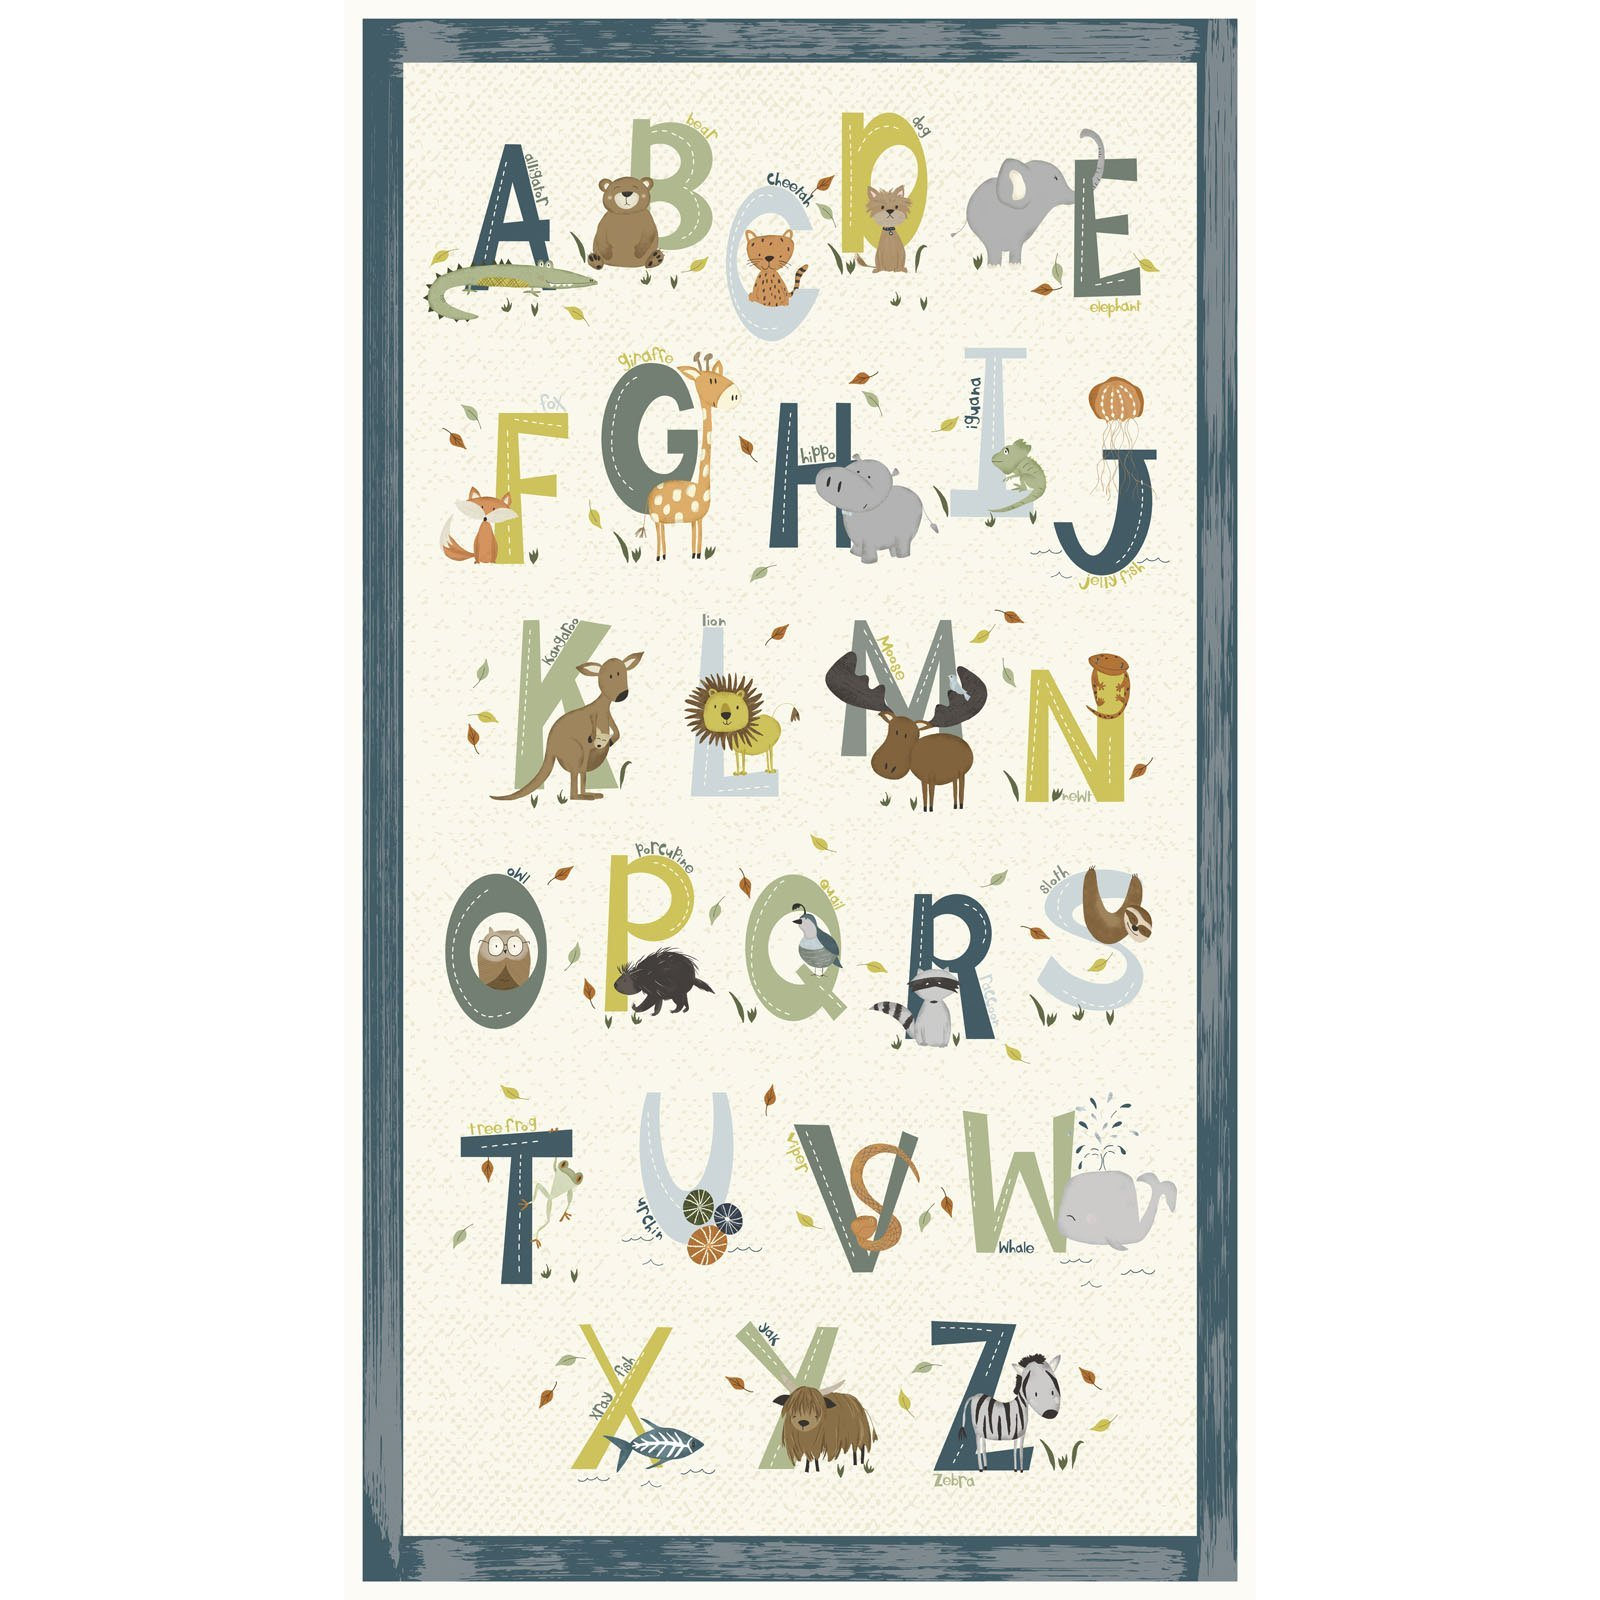 ANIA-4464 PA B - ANIMAL ALPHABET BY DEANNE BEASLEY PANEL BLUE 10YD(15 PNLS) - ARRIVING IN MAY 2021